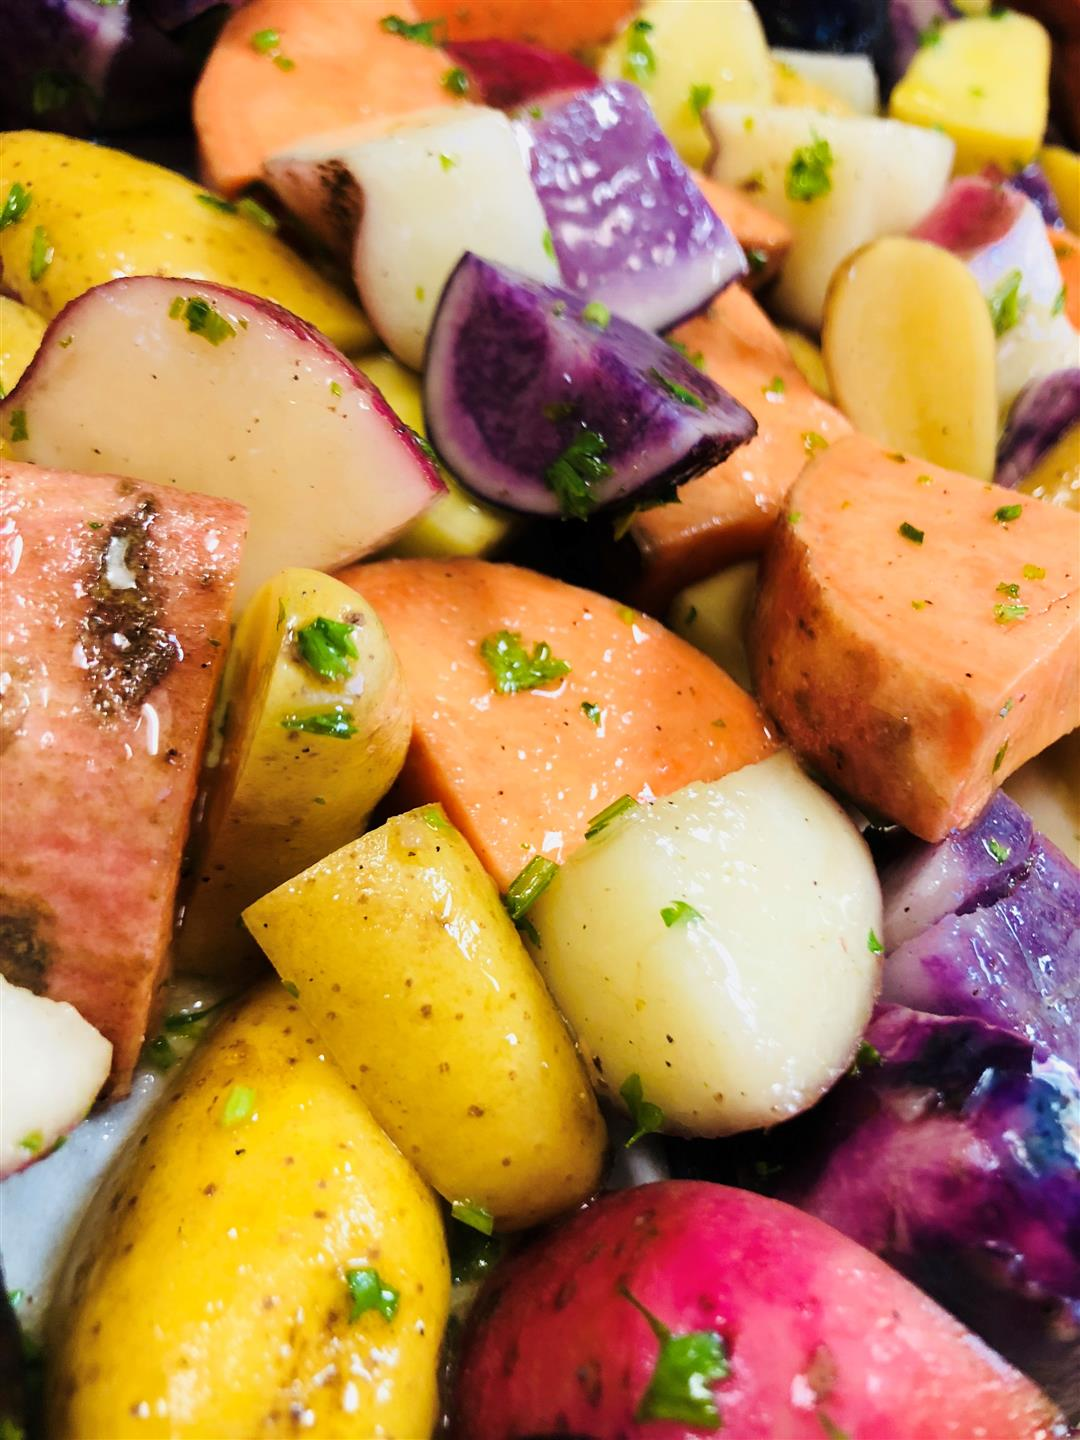 mixed colored potatoes: red, yellow, white, orange, and purple